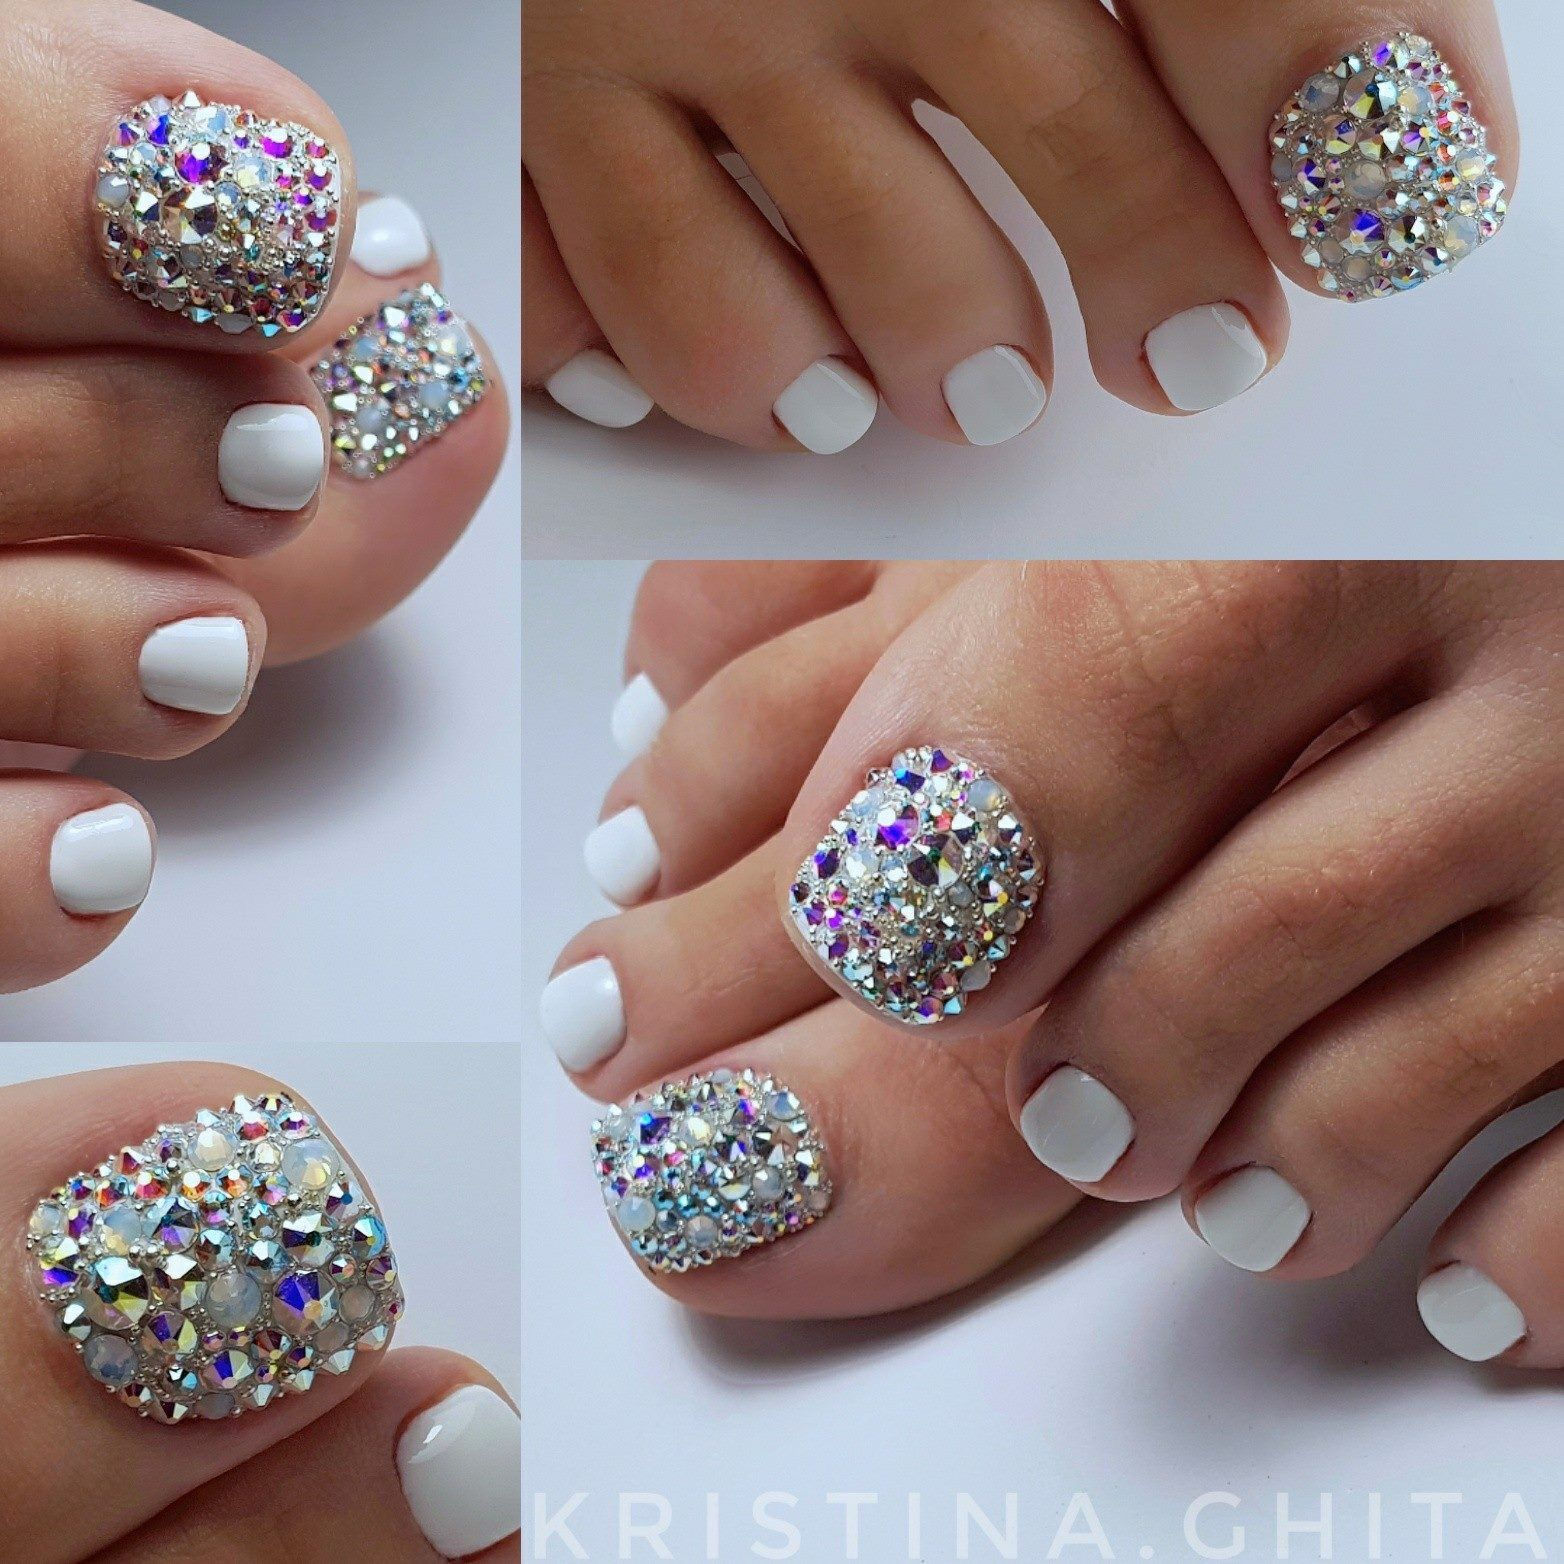 White Pedi With Clear And Mixed Rhinestones Sandals Only To Show Off This Nail Design Toe Nail Designs Toe Nails Cute Toe Nails